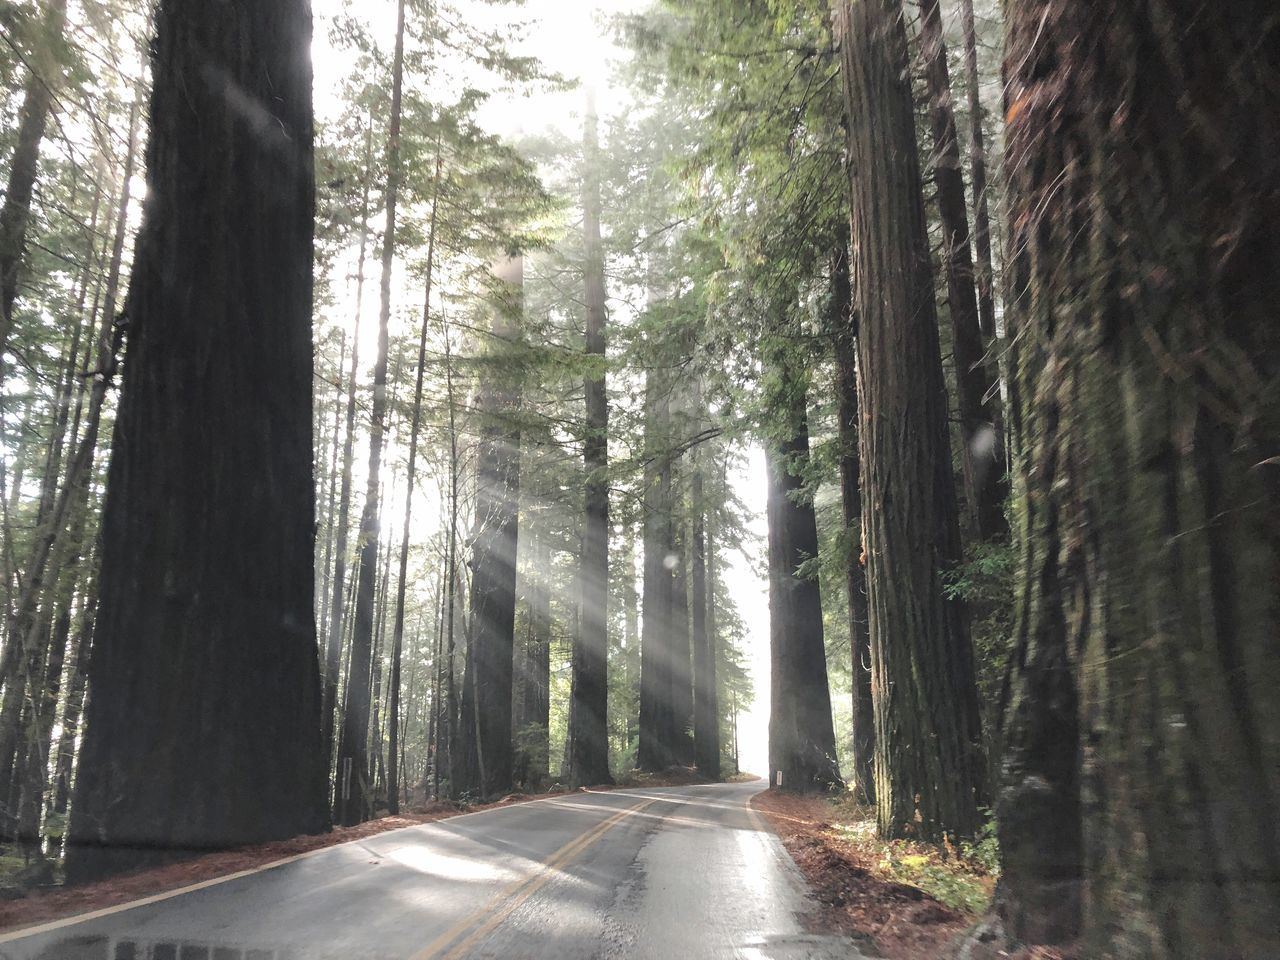 tree, forest, tree trunk, nature, day, no people, the way forward, road, tranquil scene, tranquility, beauty in nature, scenics, outdoors, landscape